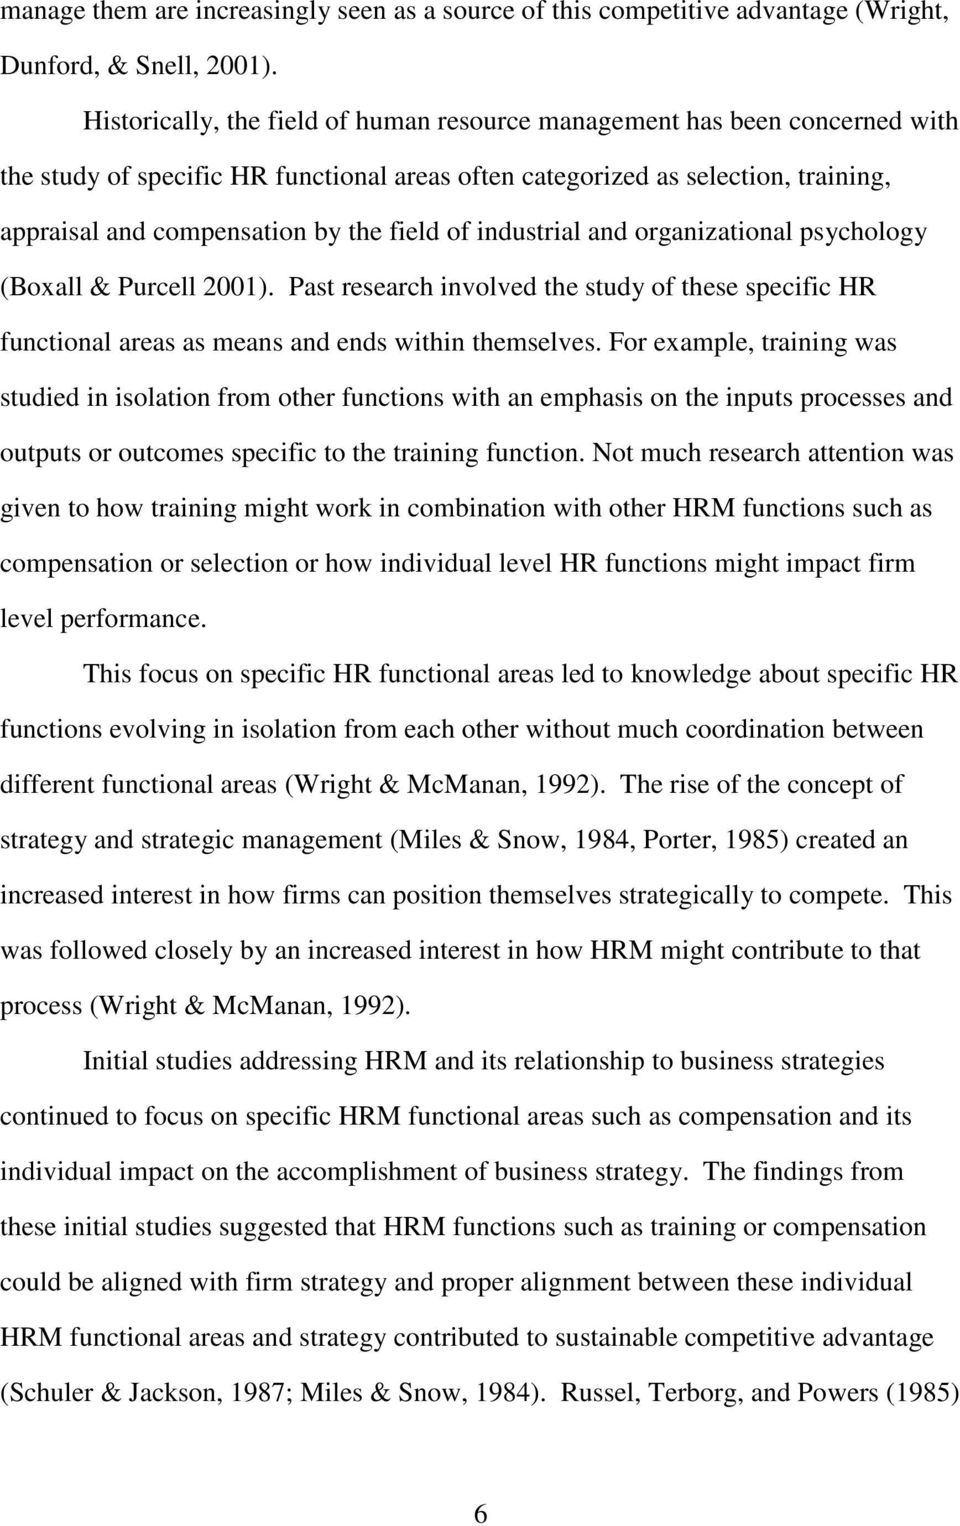 field of industrial and organizational psychology (Boxall & Purcell 2001). Past research involved the study of these specific HR functional areas as means and ends within themselves.